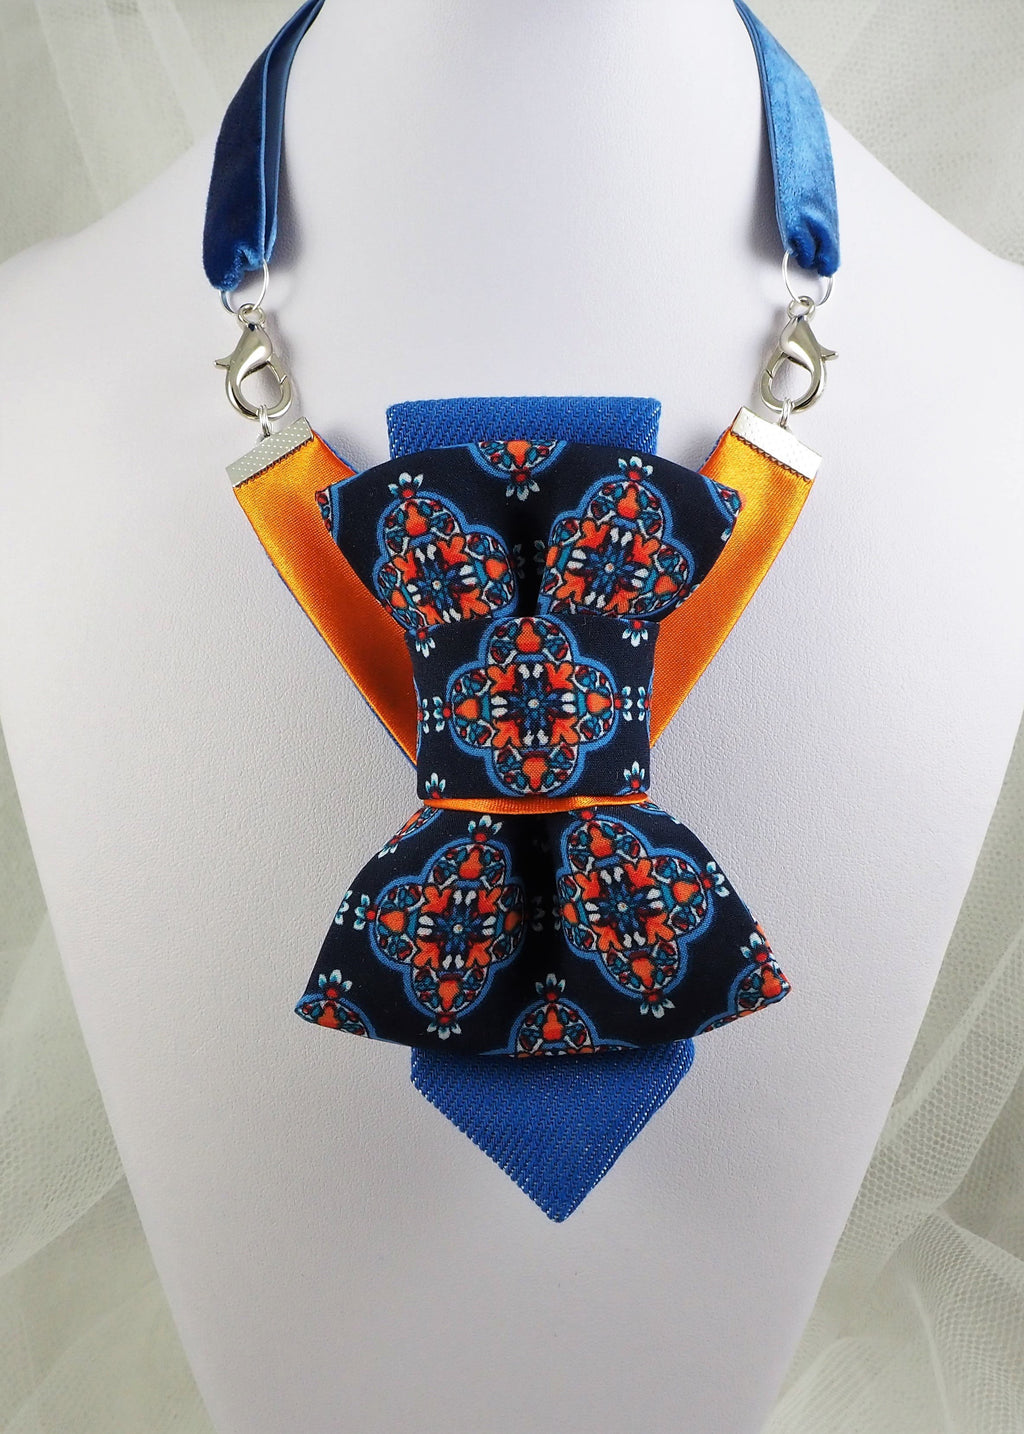 ARABIAN NIGHT I - Ruty design, Tie for wedding, Hopper tie - original patented hand made vertical bow tie